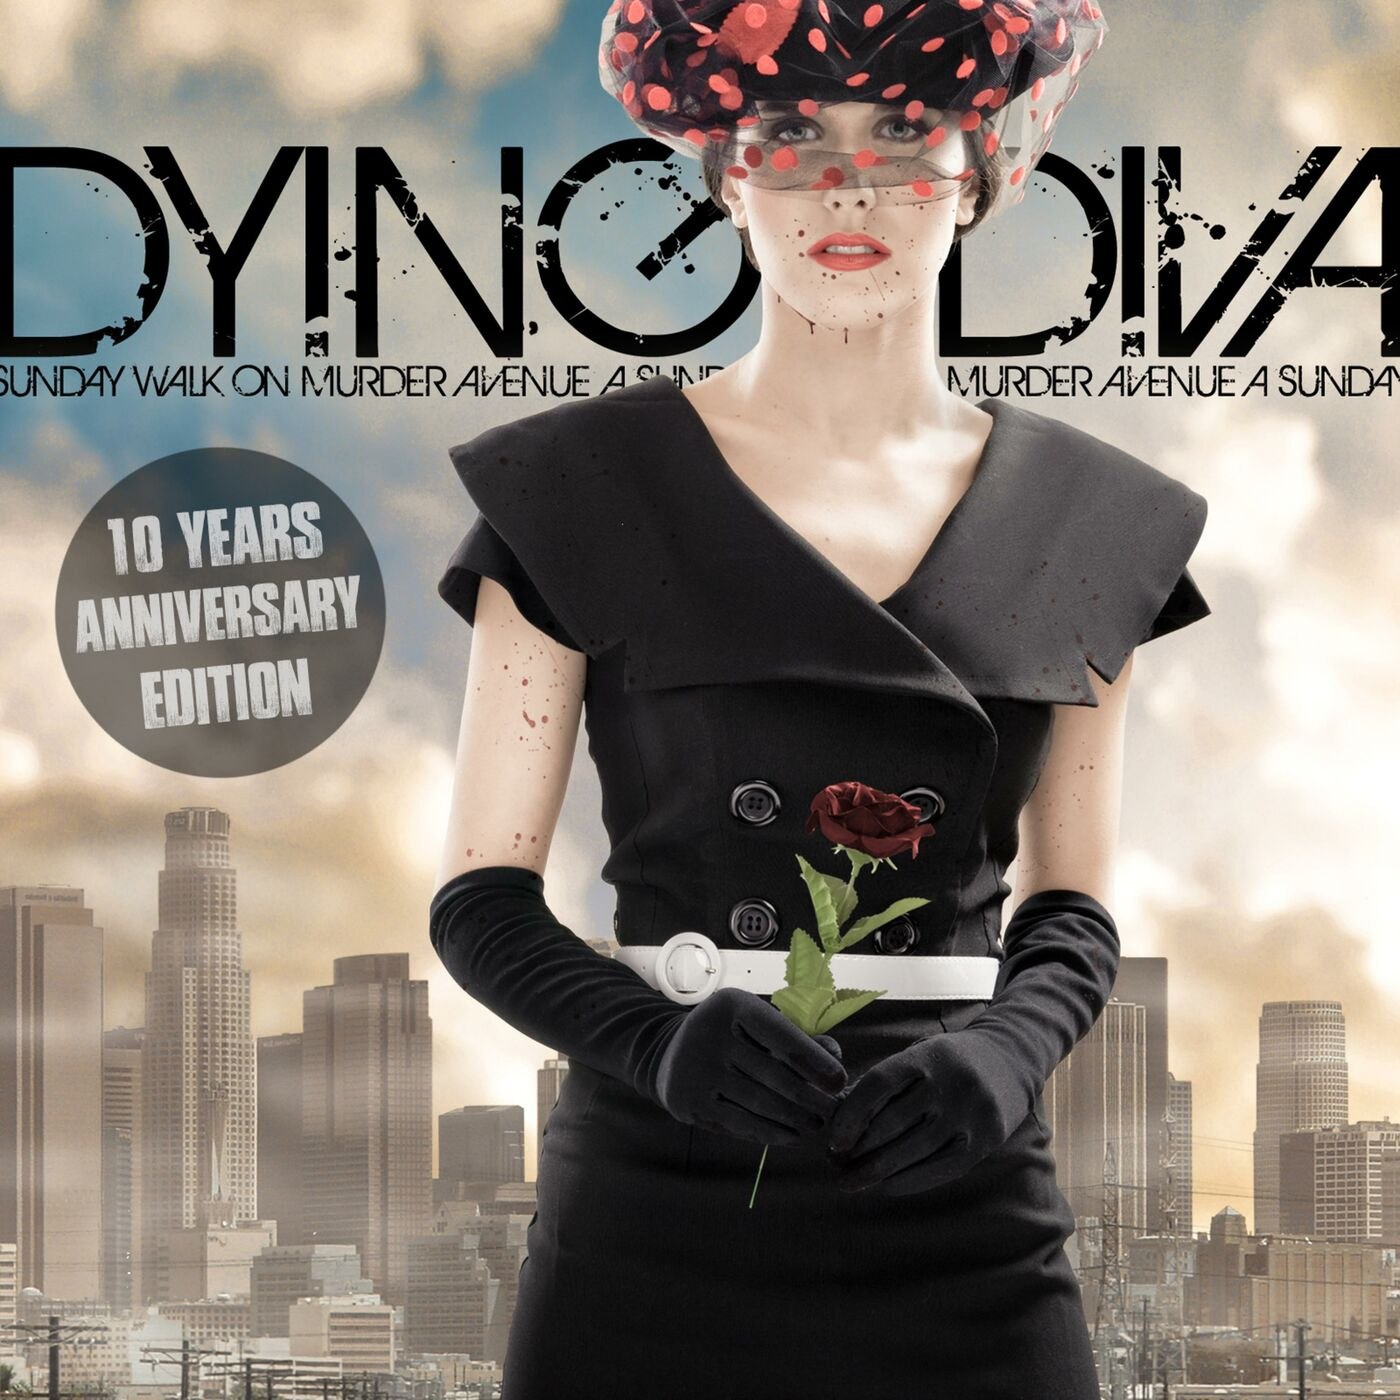 Dying Diva - A Sunday Walk on Murder Avenue (10 Years Anniversary Edition) (2019)